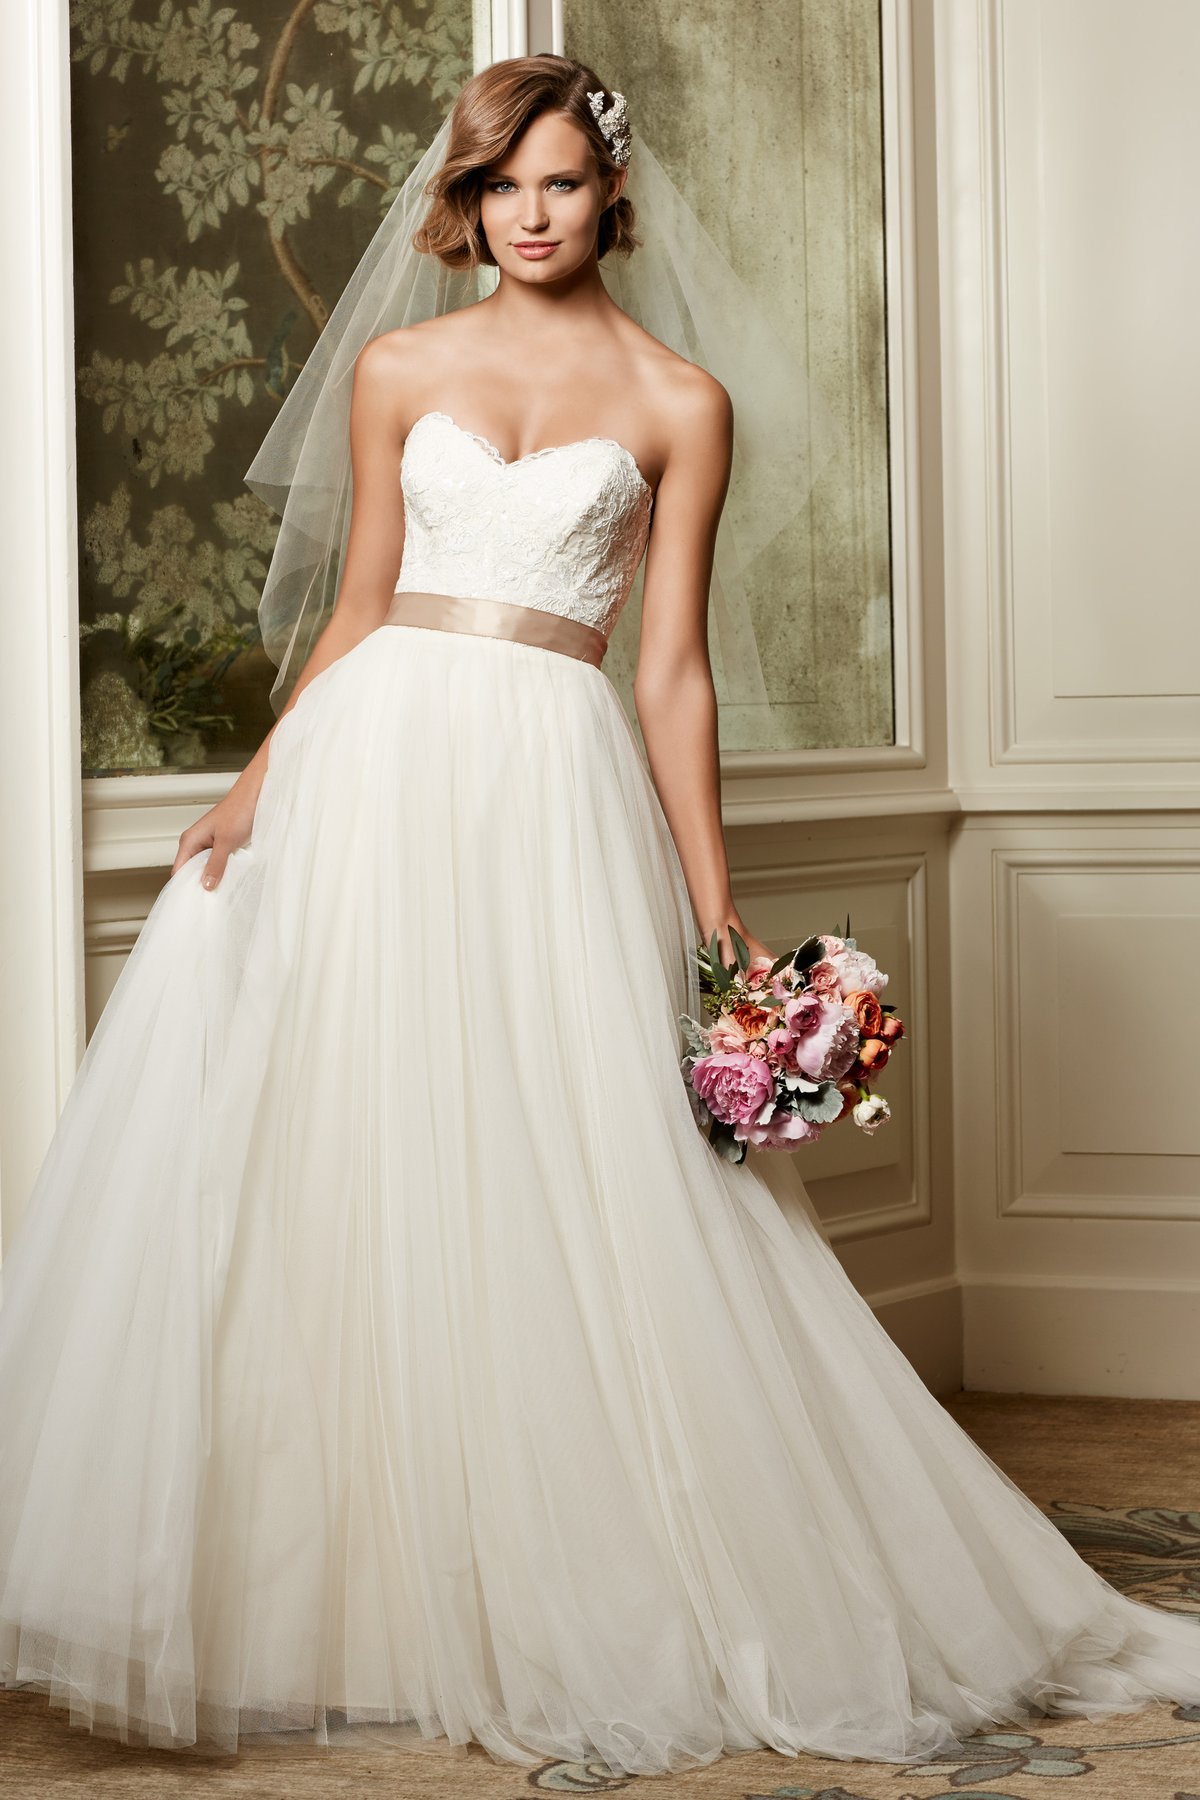 Lori G Wedding Dresses : Agatha by wtoo wedding dress from lori g bridal derby